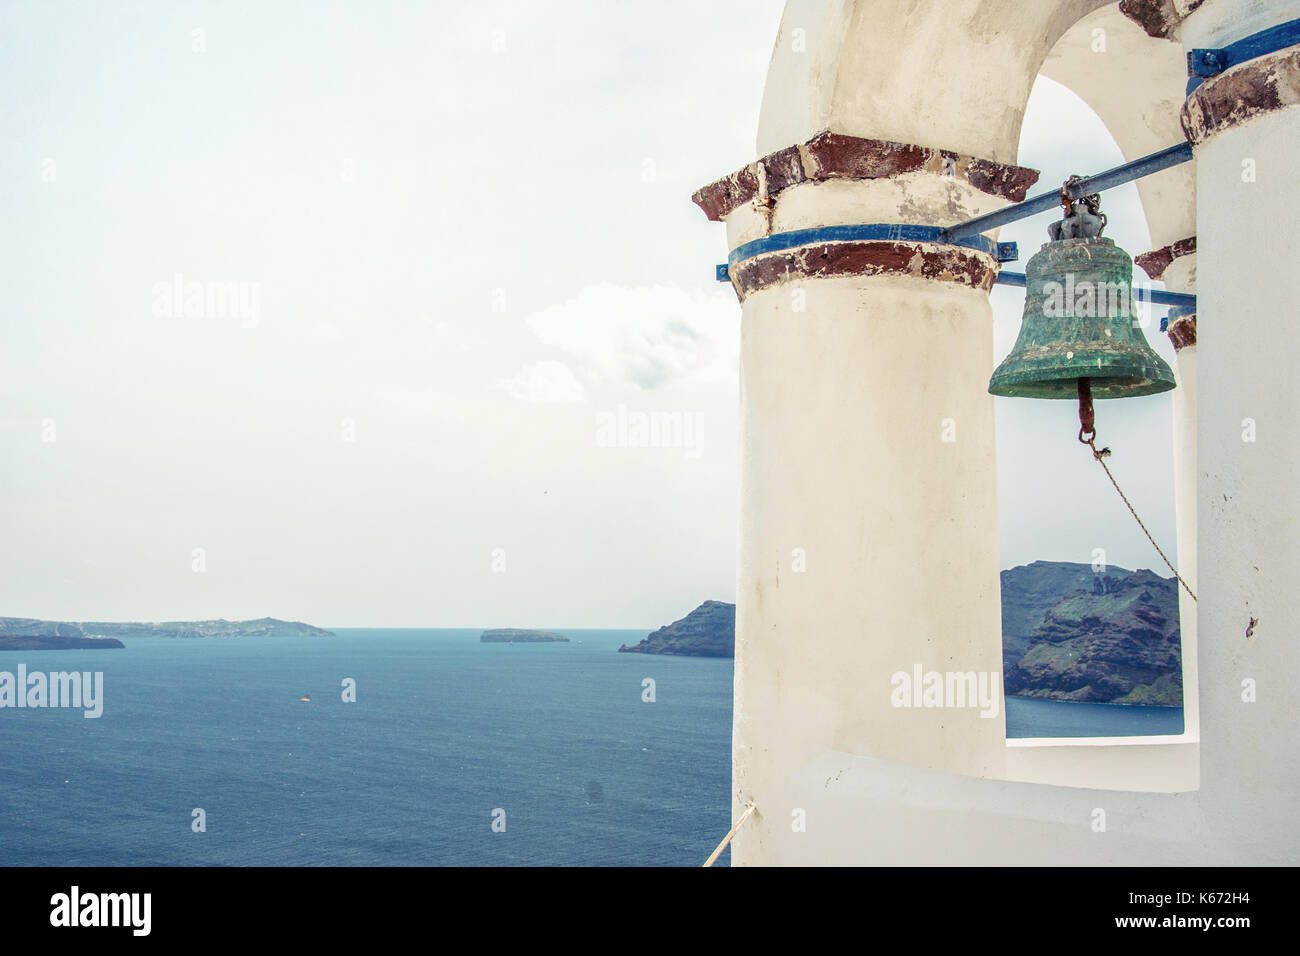 Bell tower of an orthodox church at Santorini, Greece. Honeymoon summer aegean cycladic background. - Stock Image